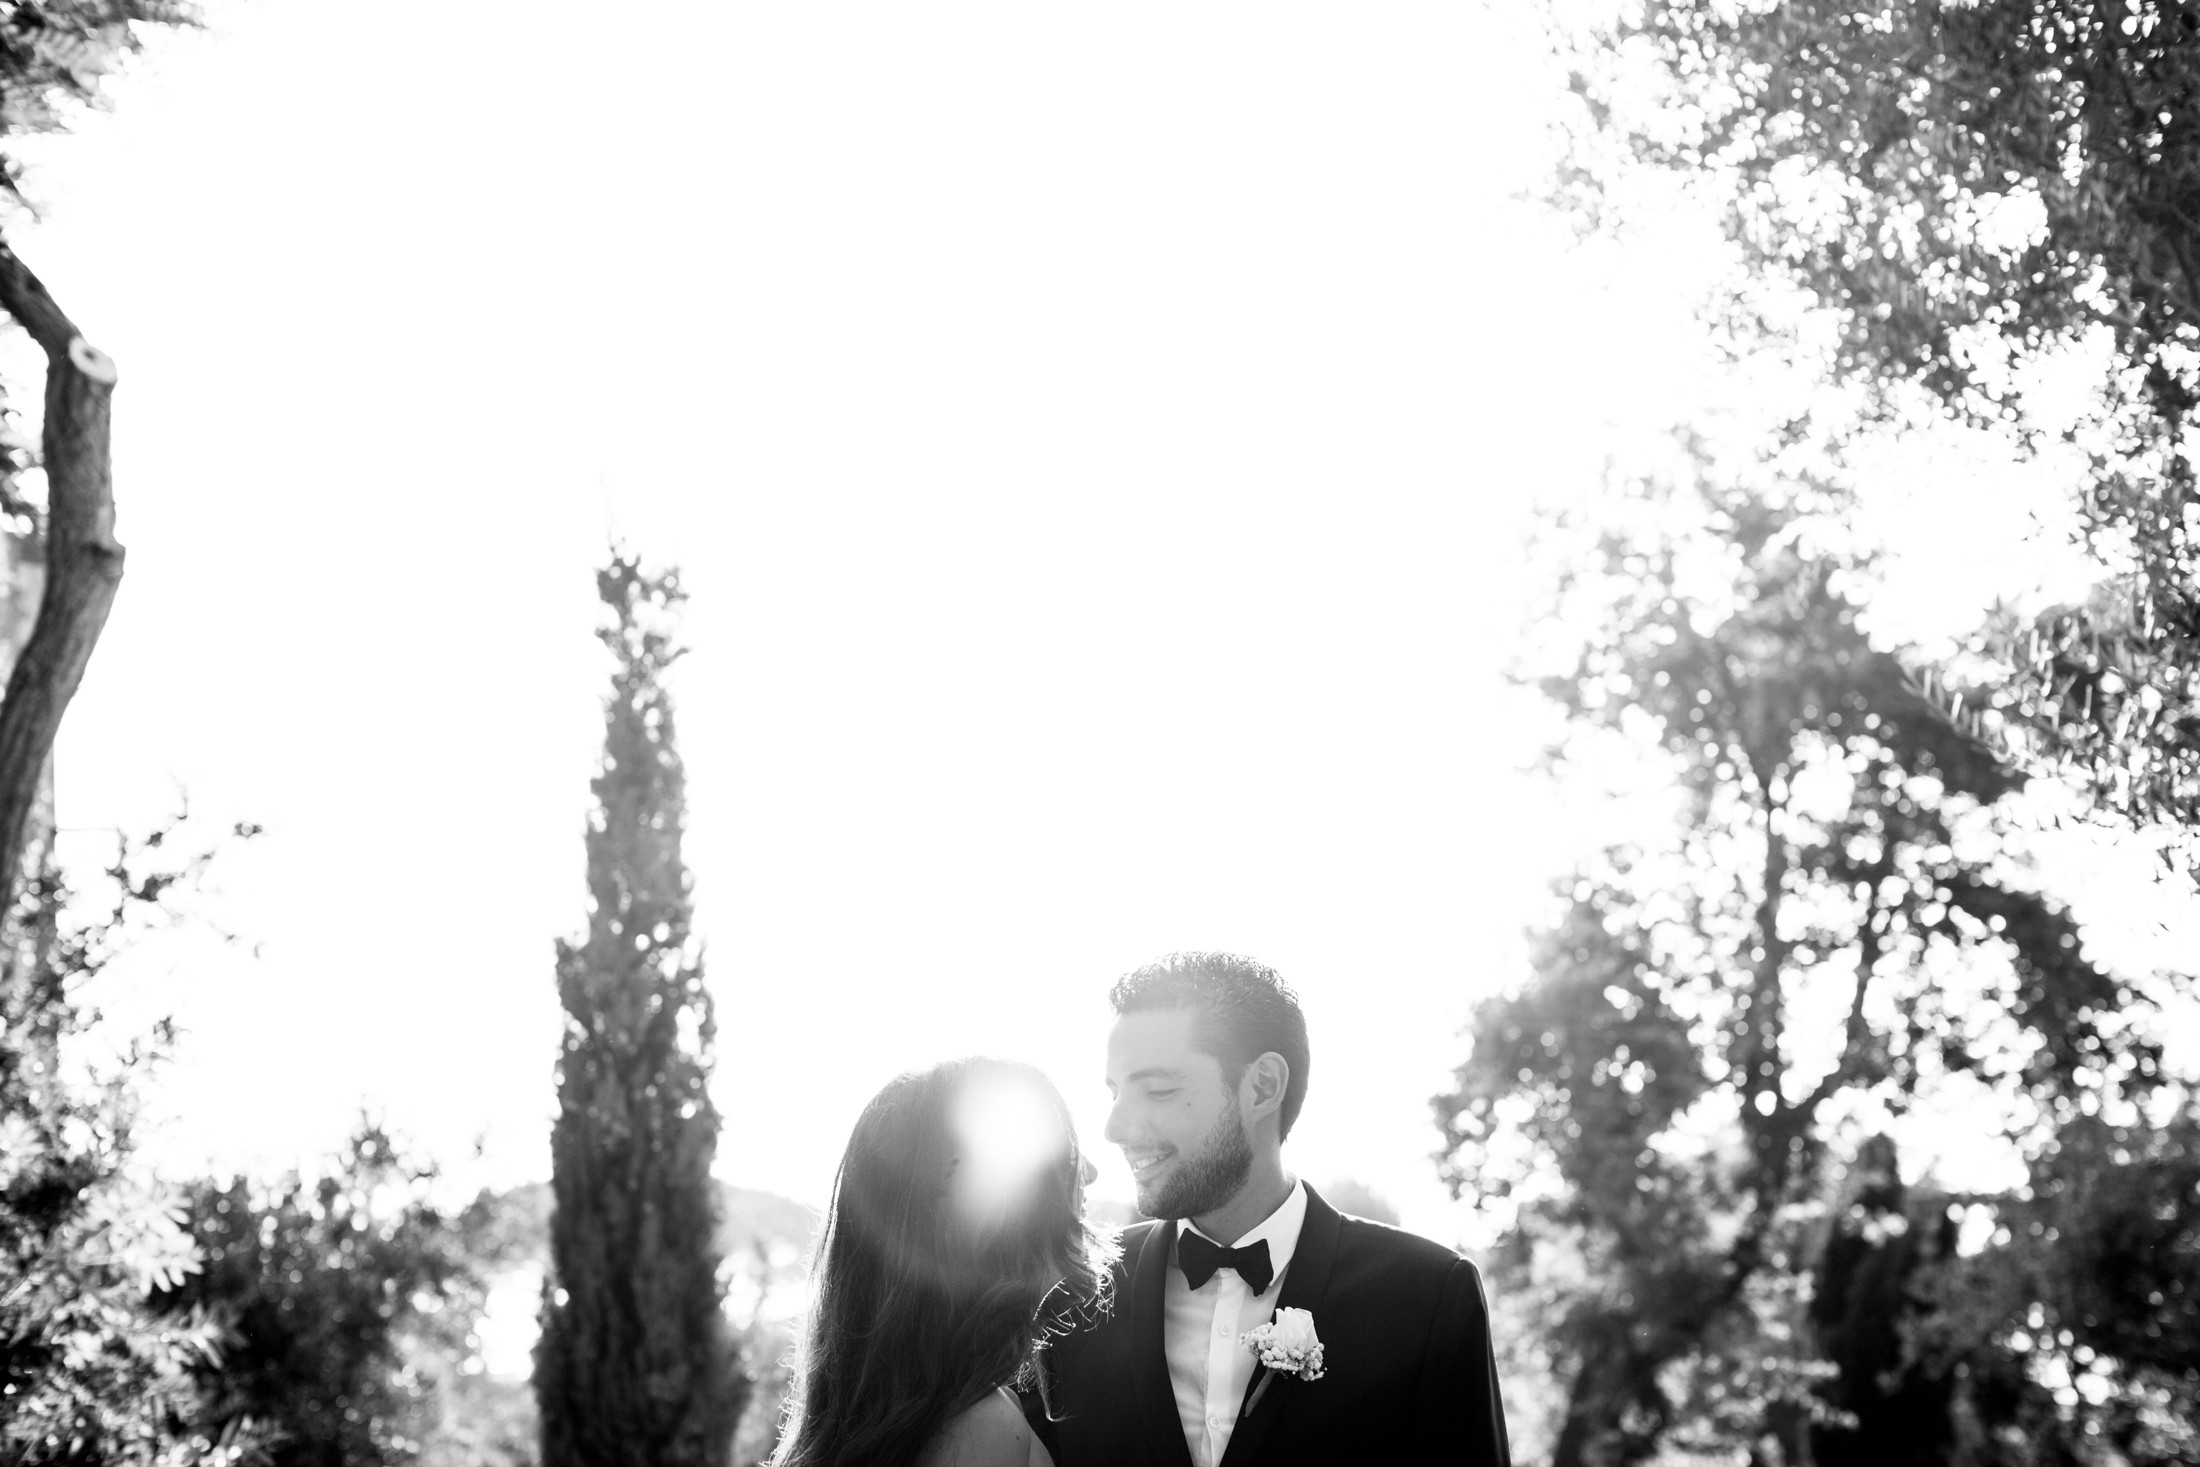 bride and groom's portrait in black and white